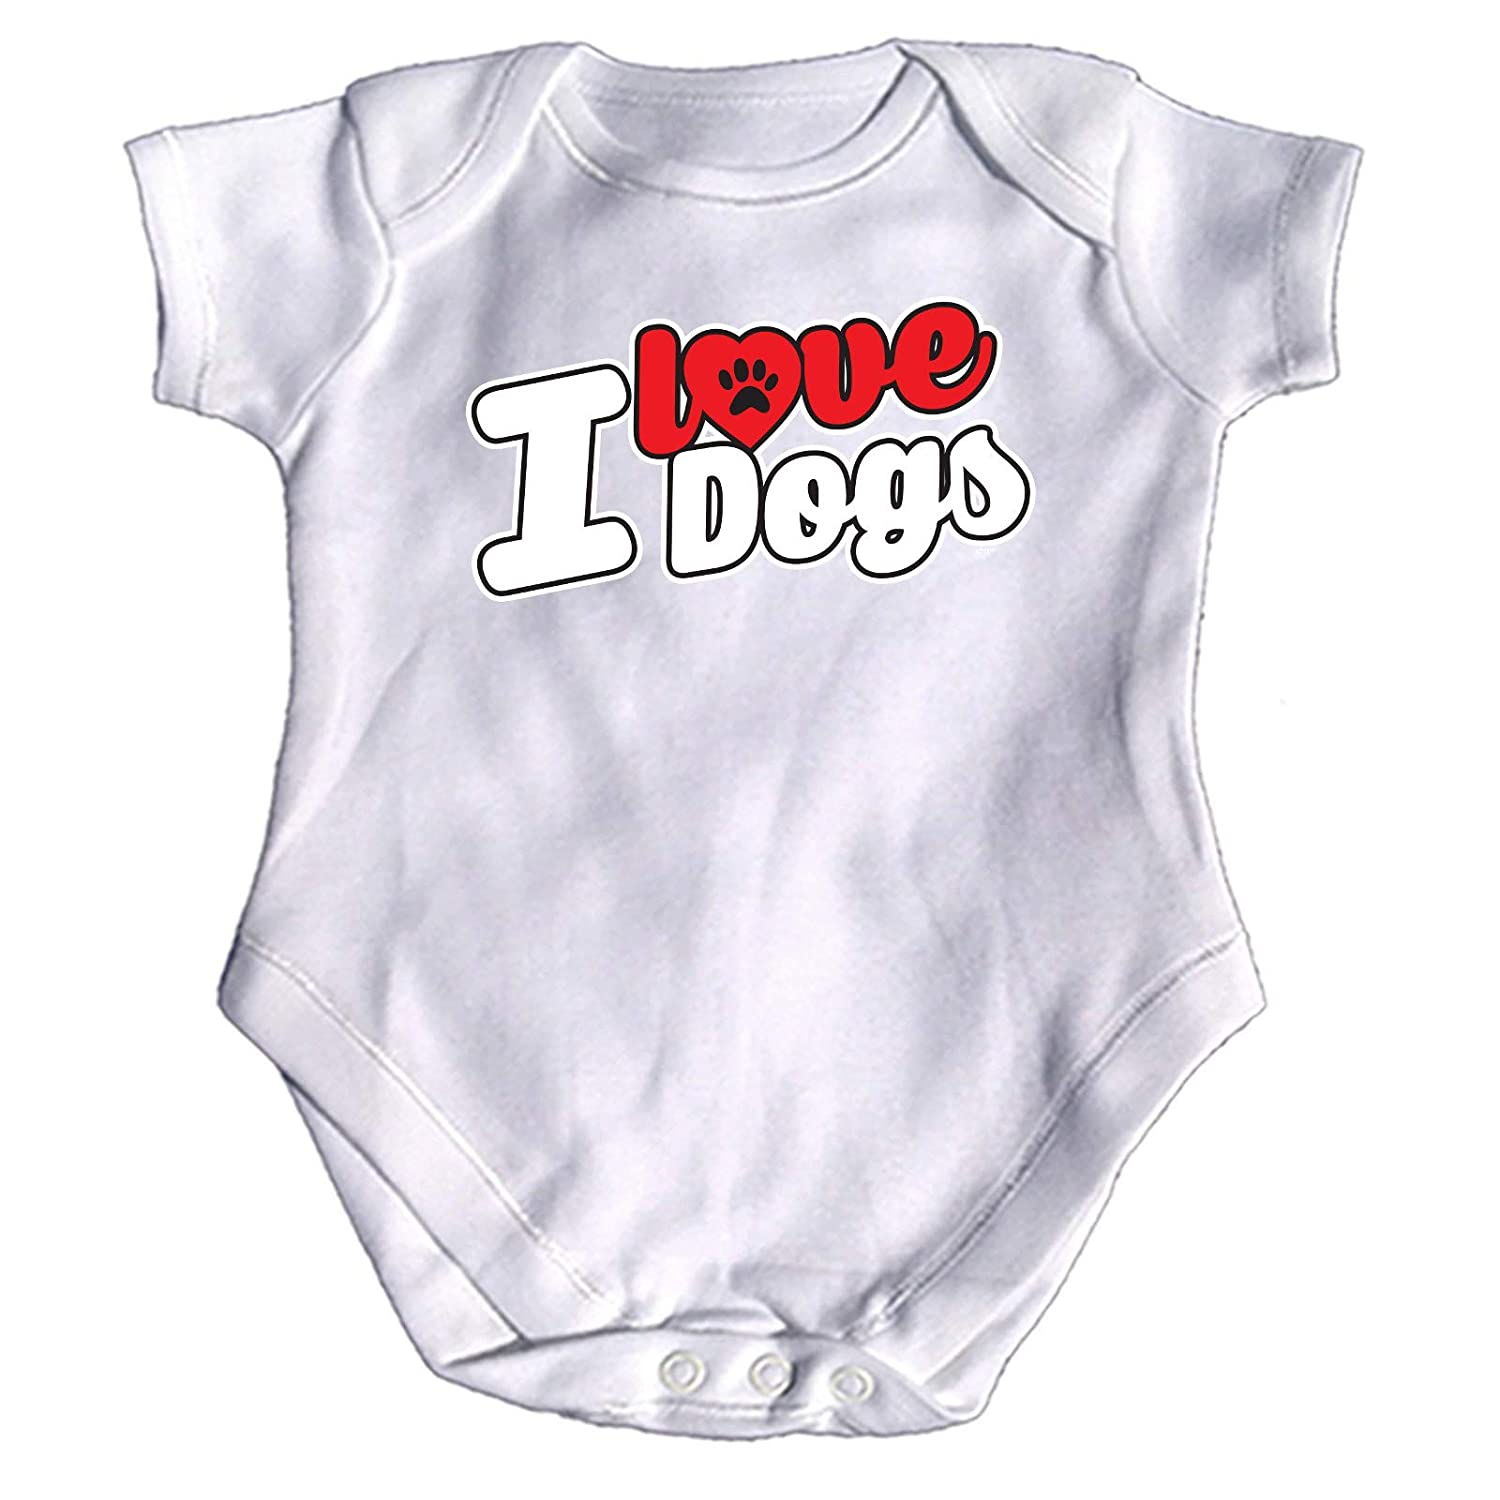 Jumpsuit Romper Pajamas Gifts Gift Novelty Babygrows Brand 1414 123t Funny Novelty Funny Babygrow